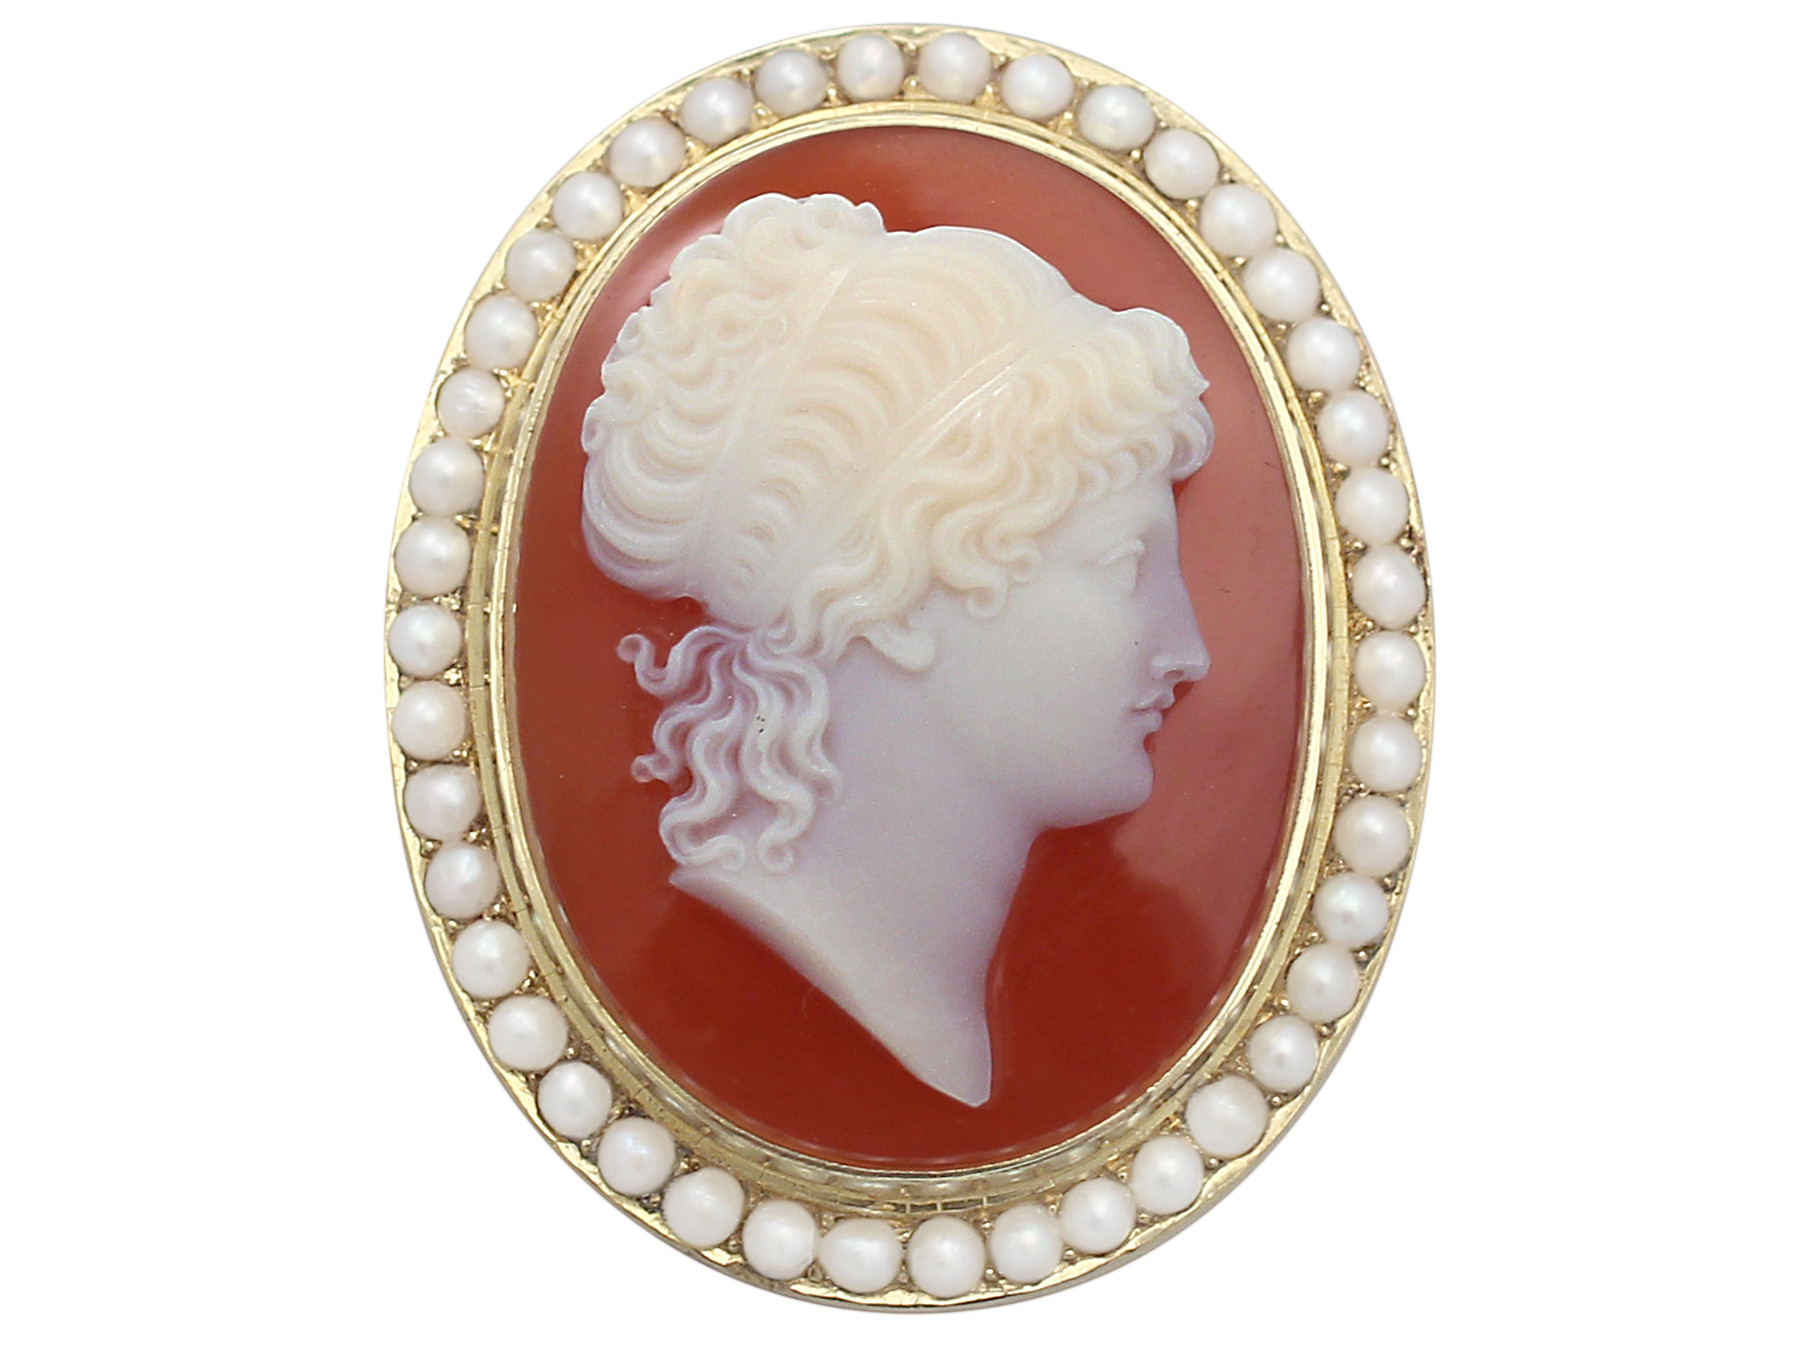 antique victorian cameo brooch with pearls, 15 ct yellow gold oahwjrc